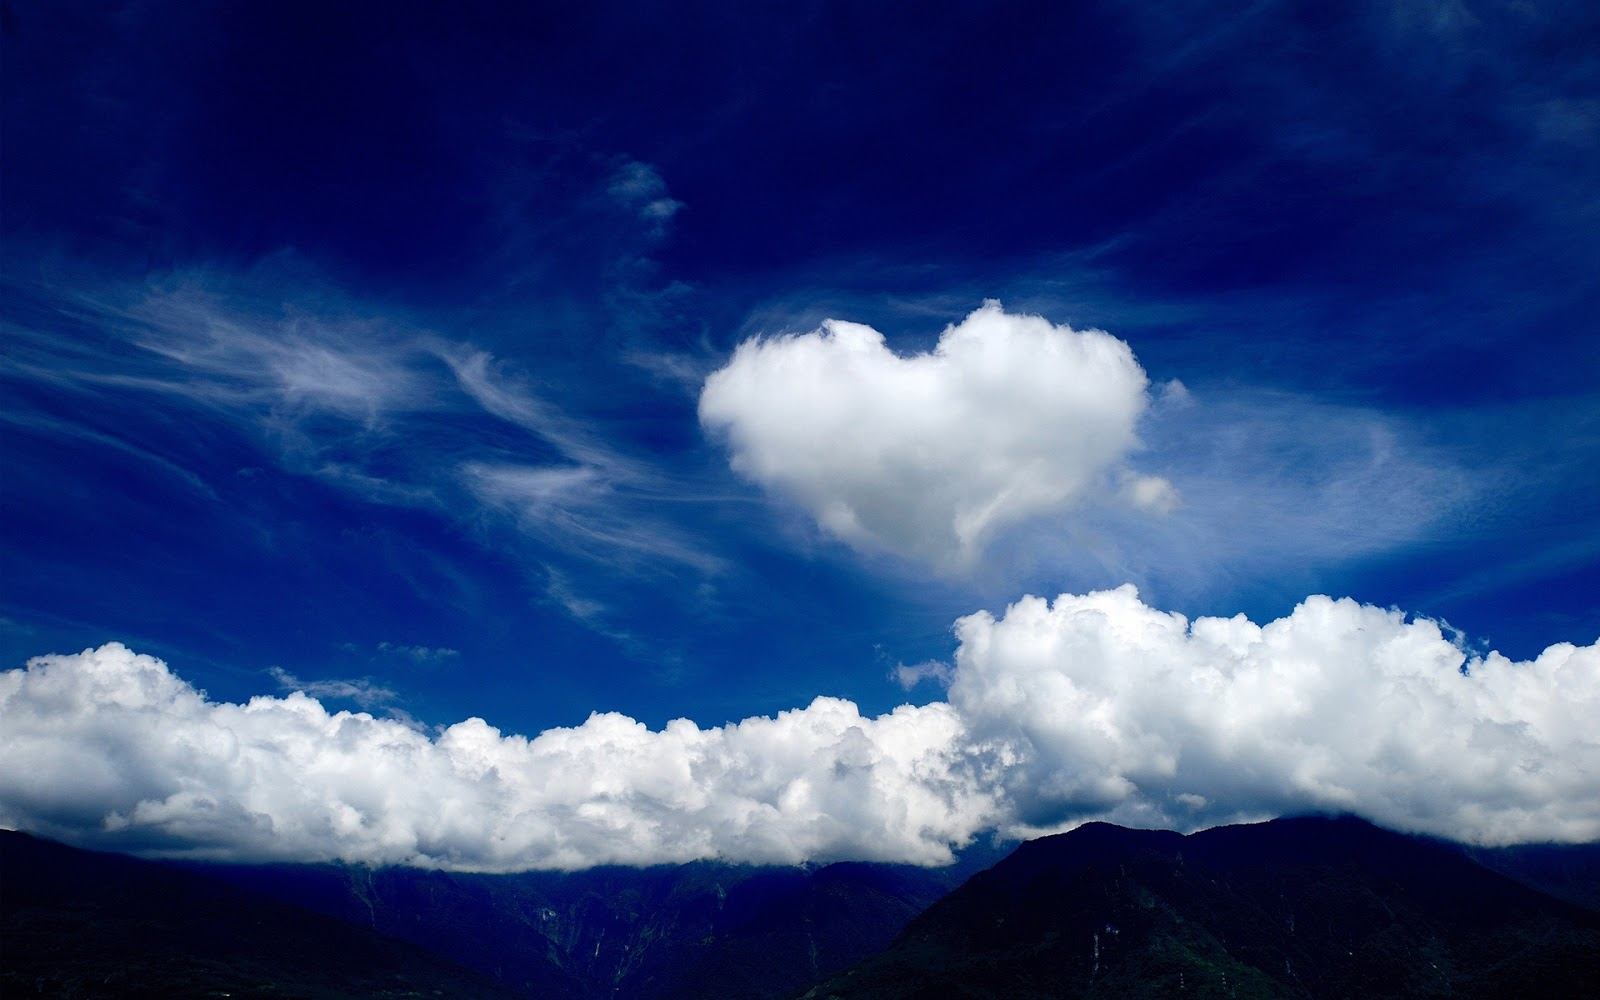 Valentine's Day - Heart shaped cloud wallpapers - ART FOR YOUR WALLPAPER